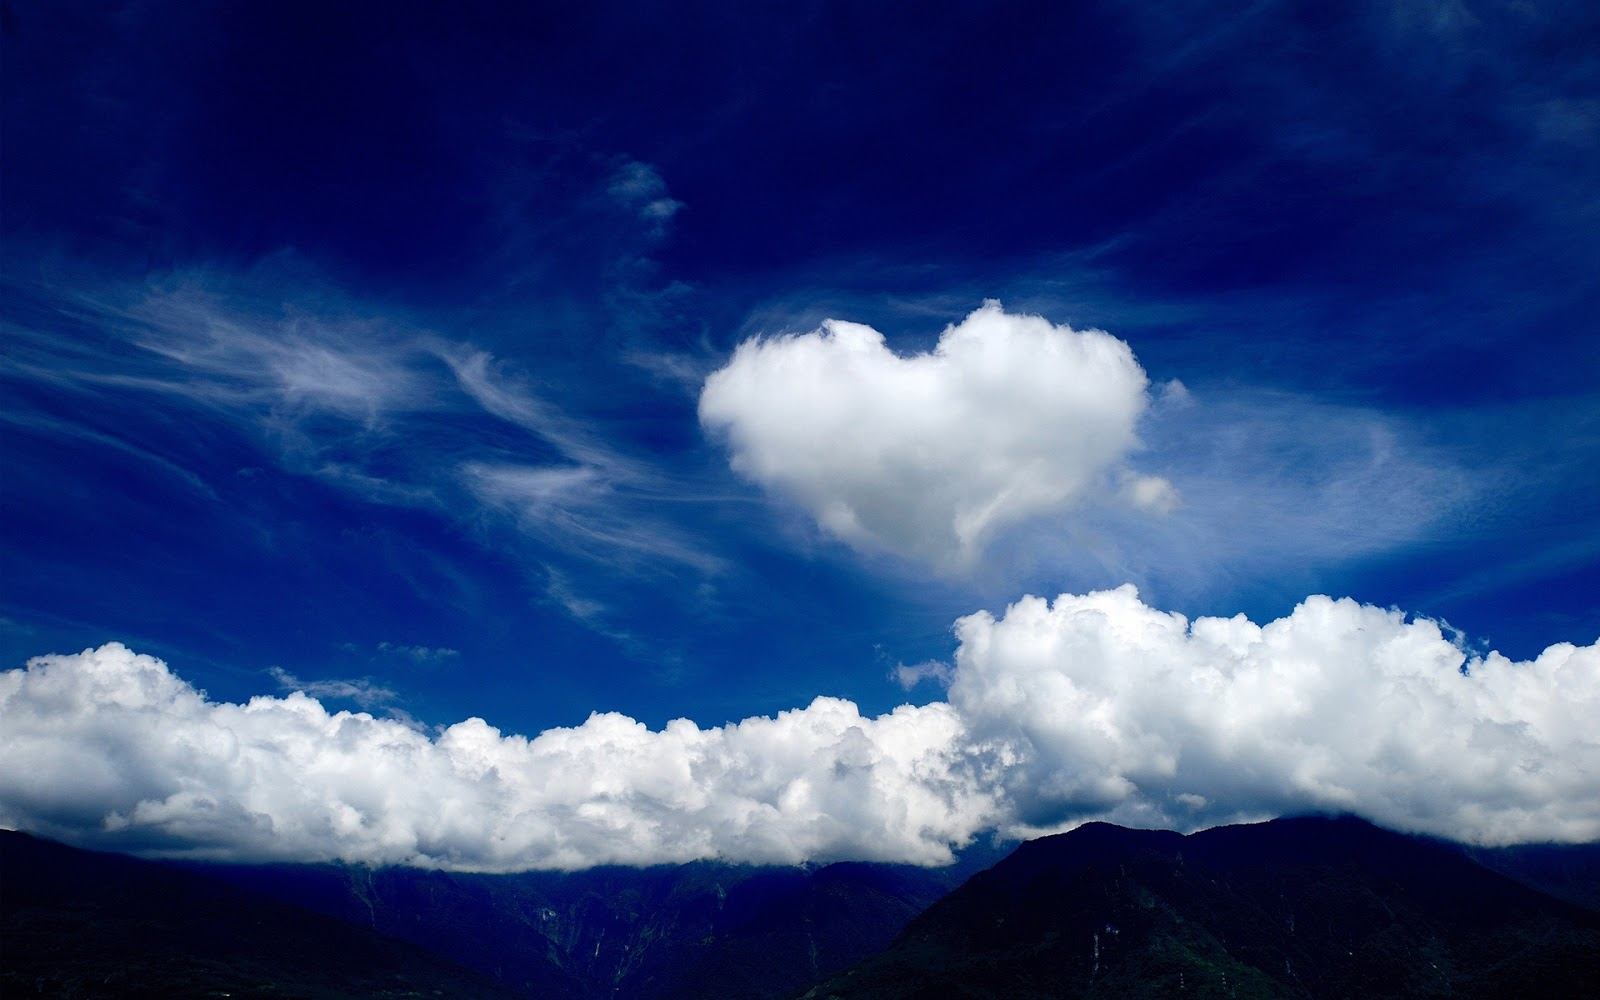 Valentine's Day - Heart shaped cloud wallpapers - ART FOR YOUR WALLPAPER